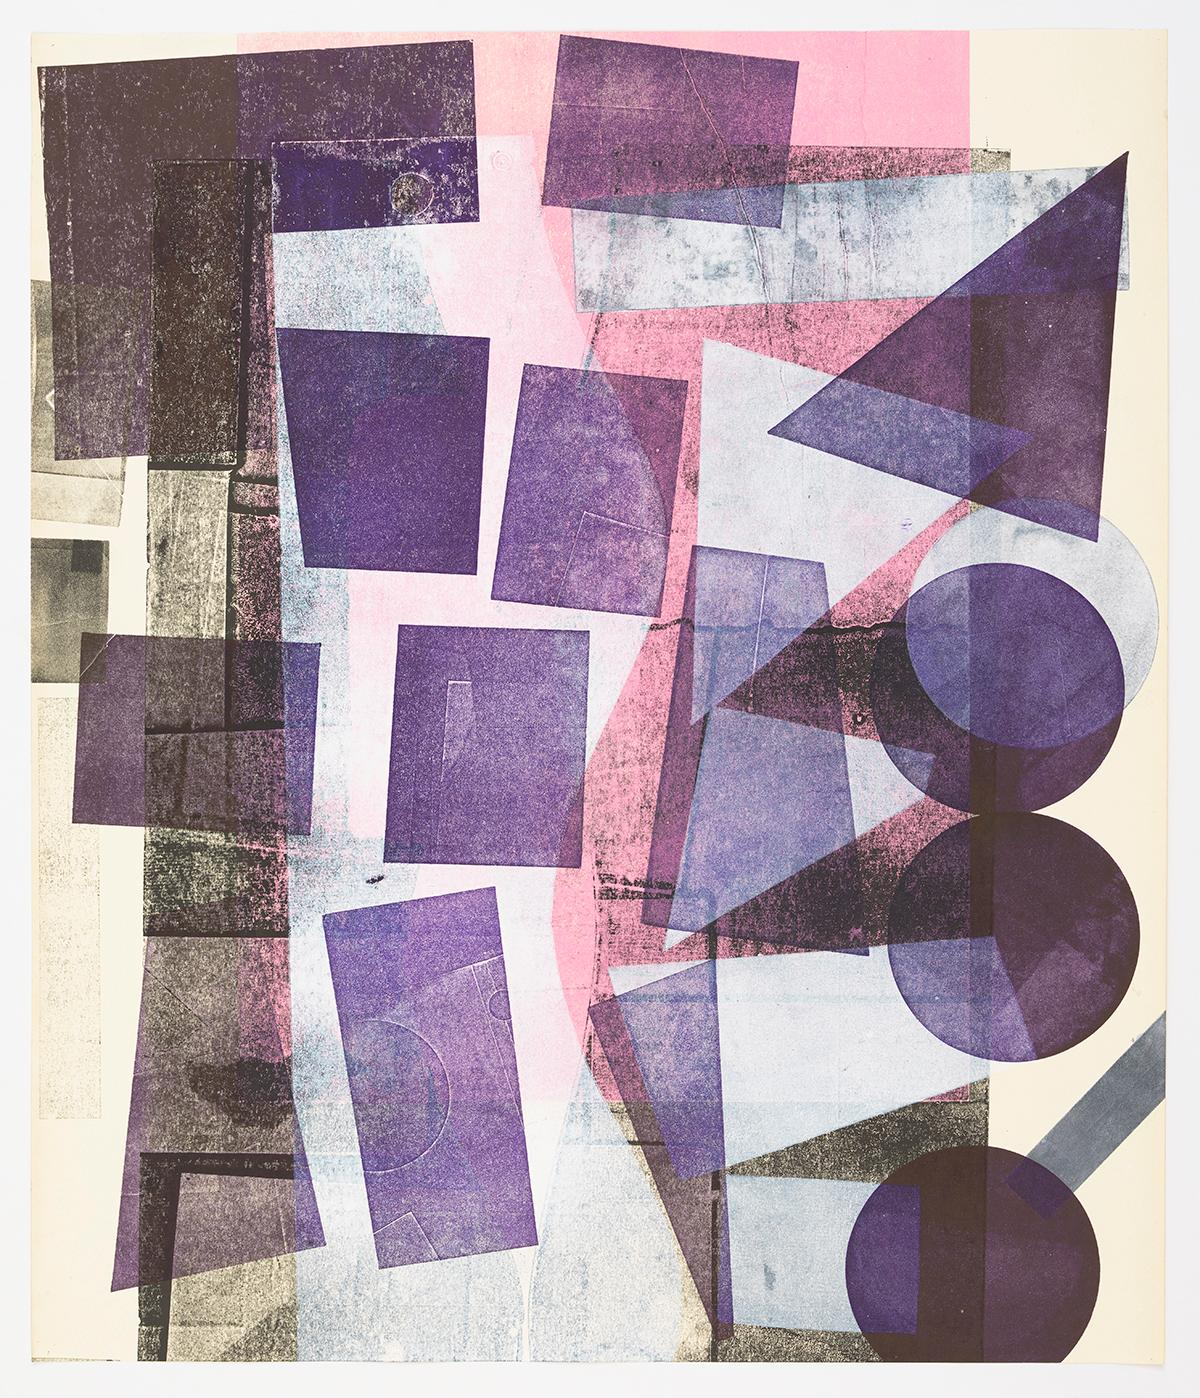 Fading pink, High Purple, White Shapes